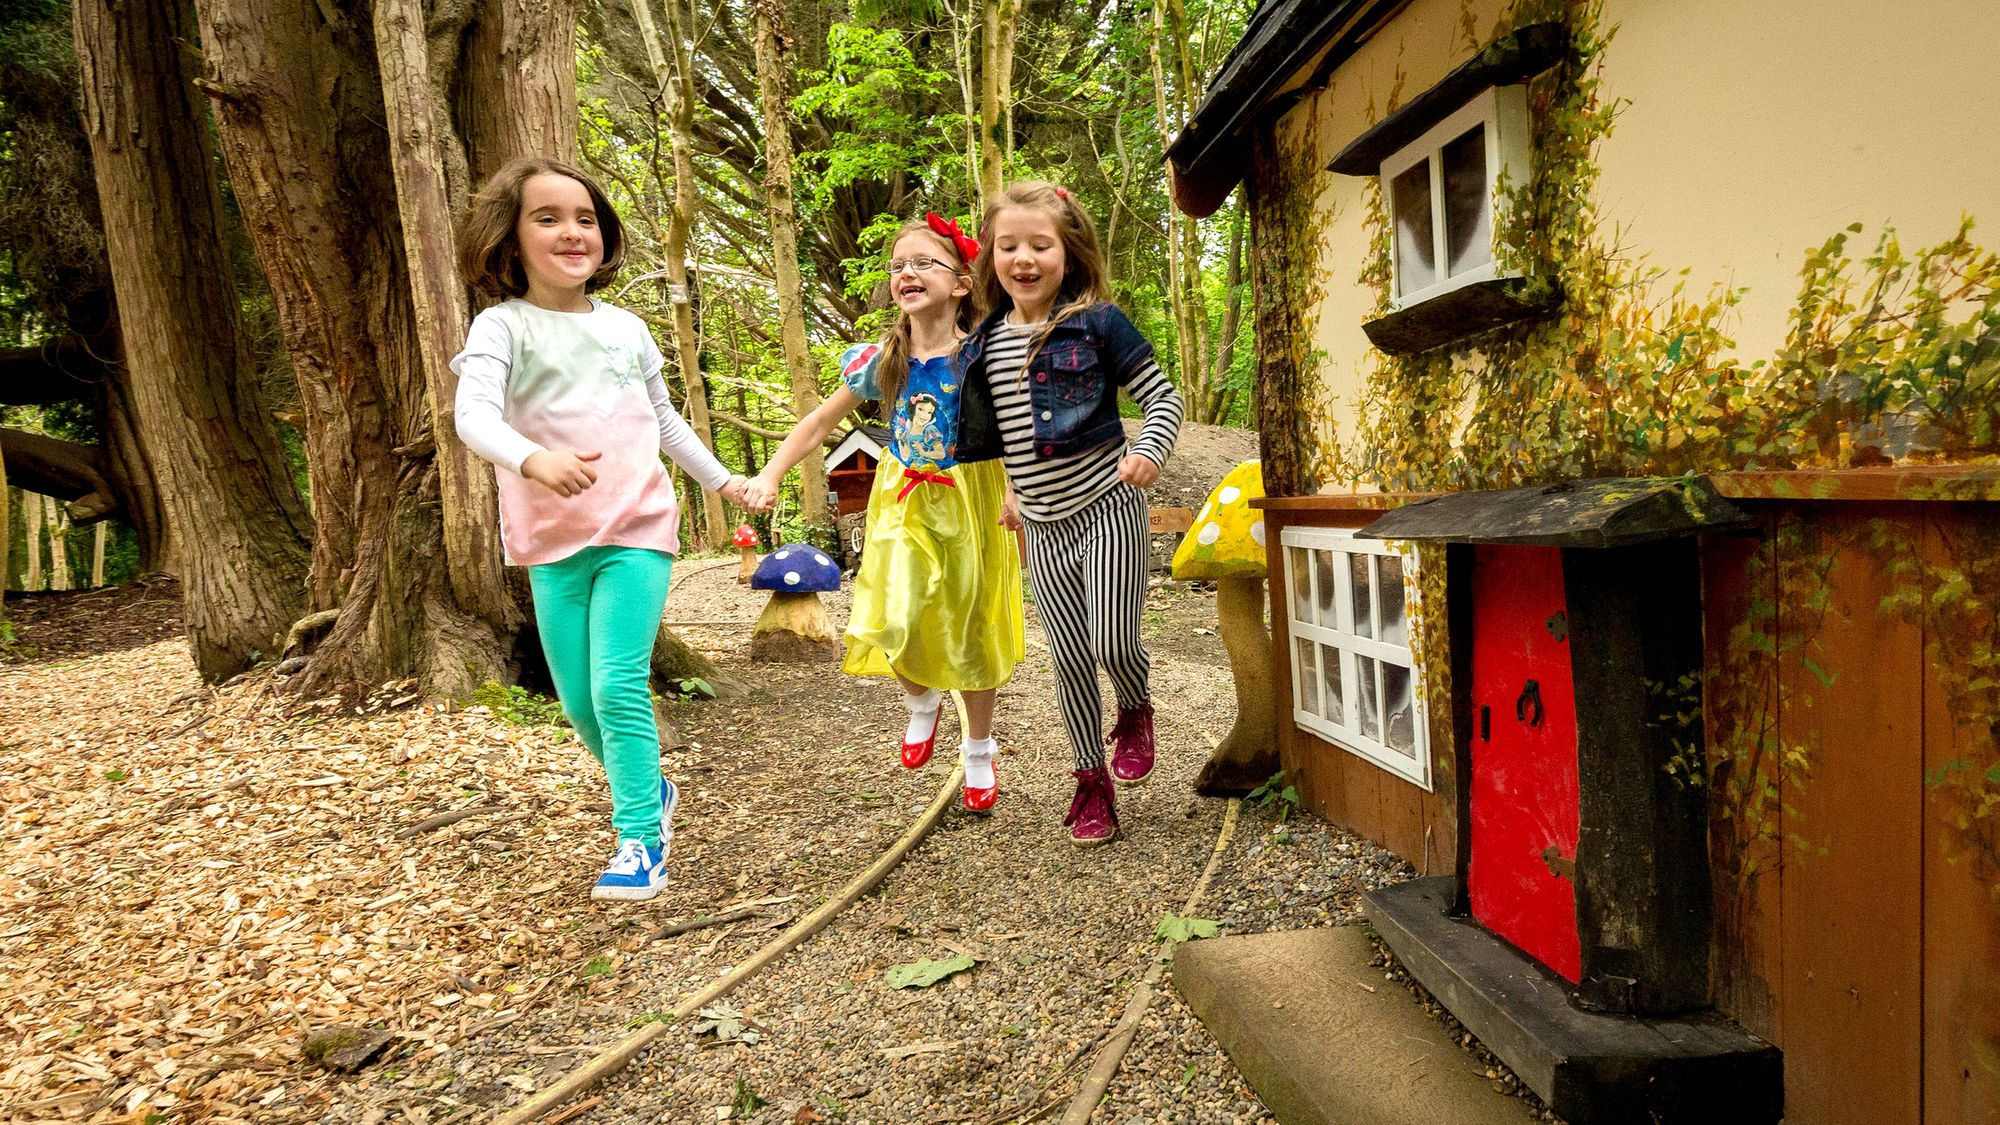 Leisurely Summer Reading Childs Play >> 50 Great Family Days Out In Ireland This Summer